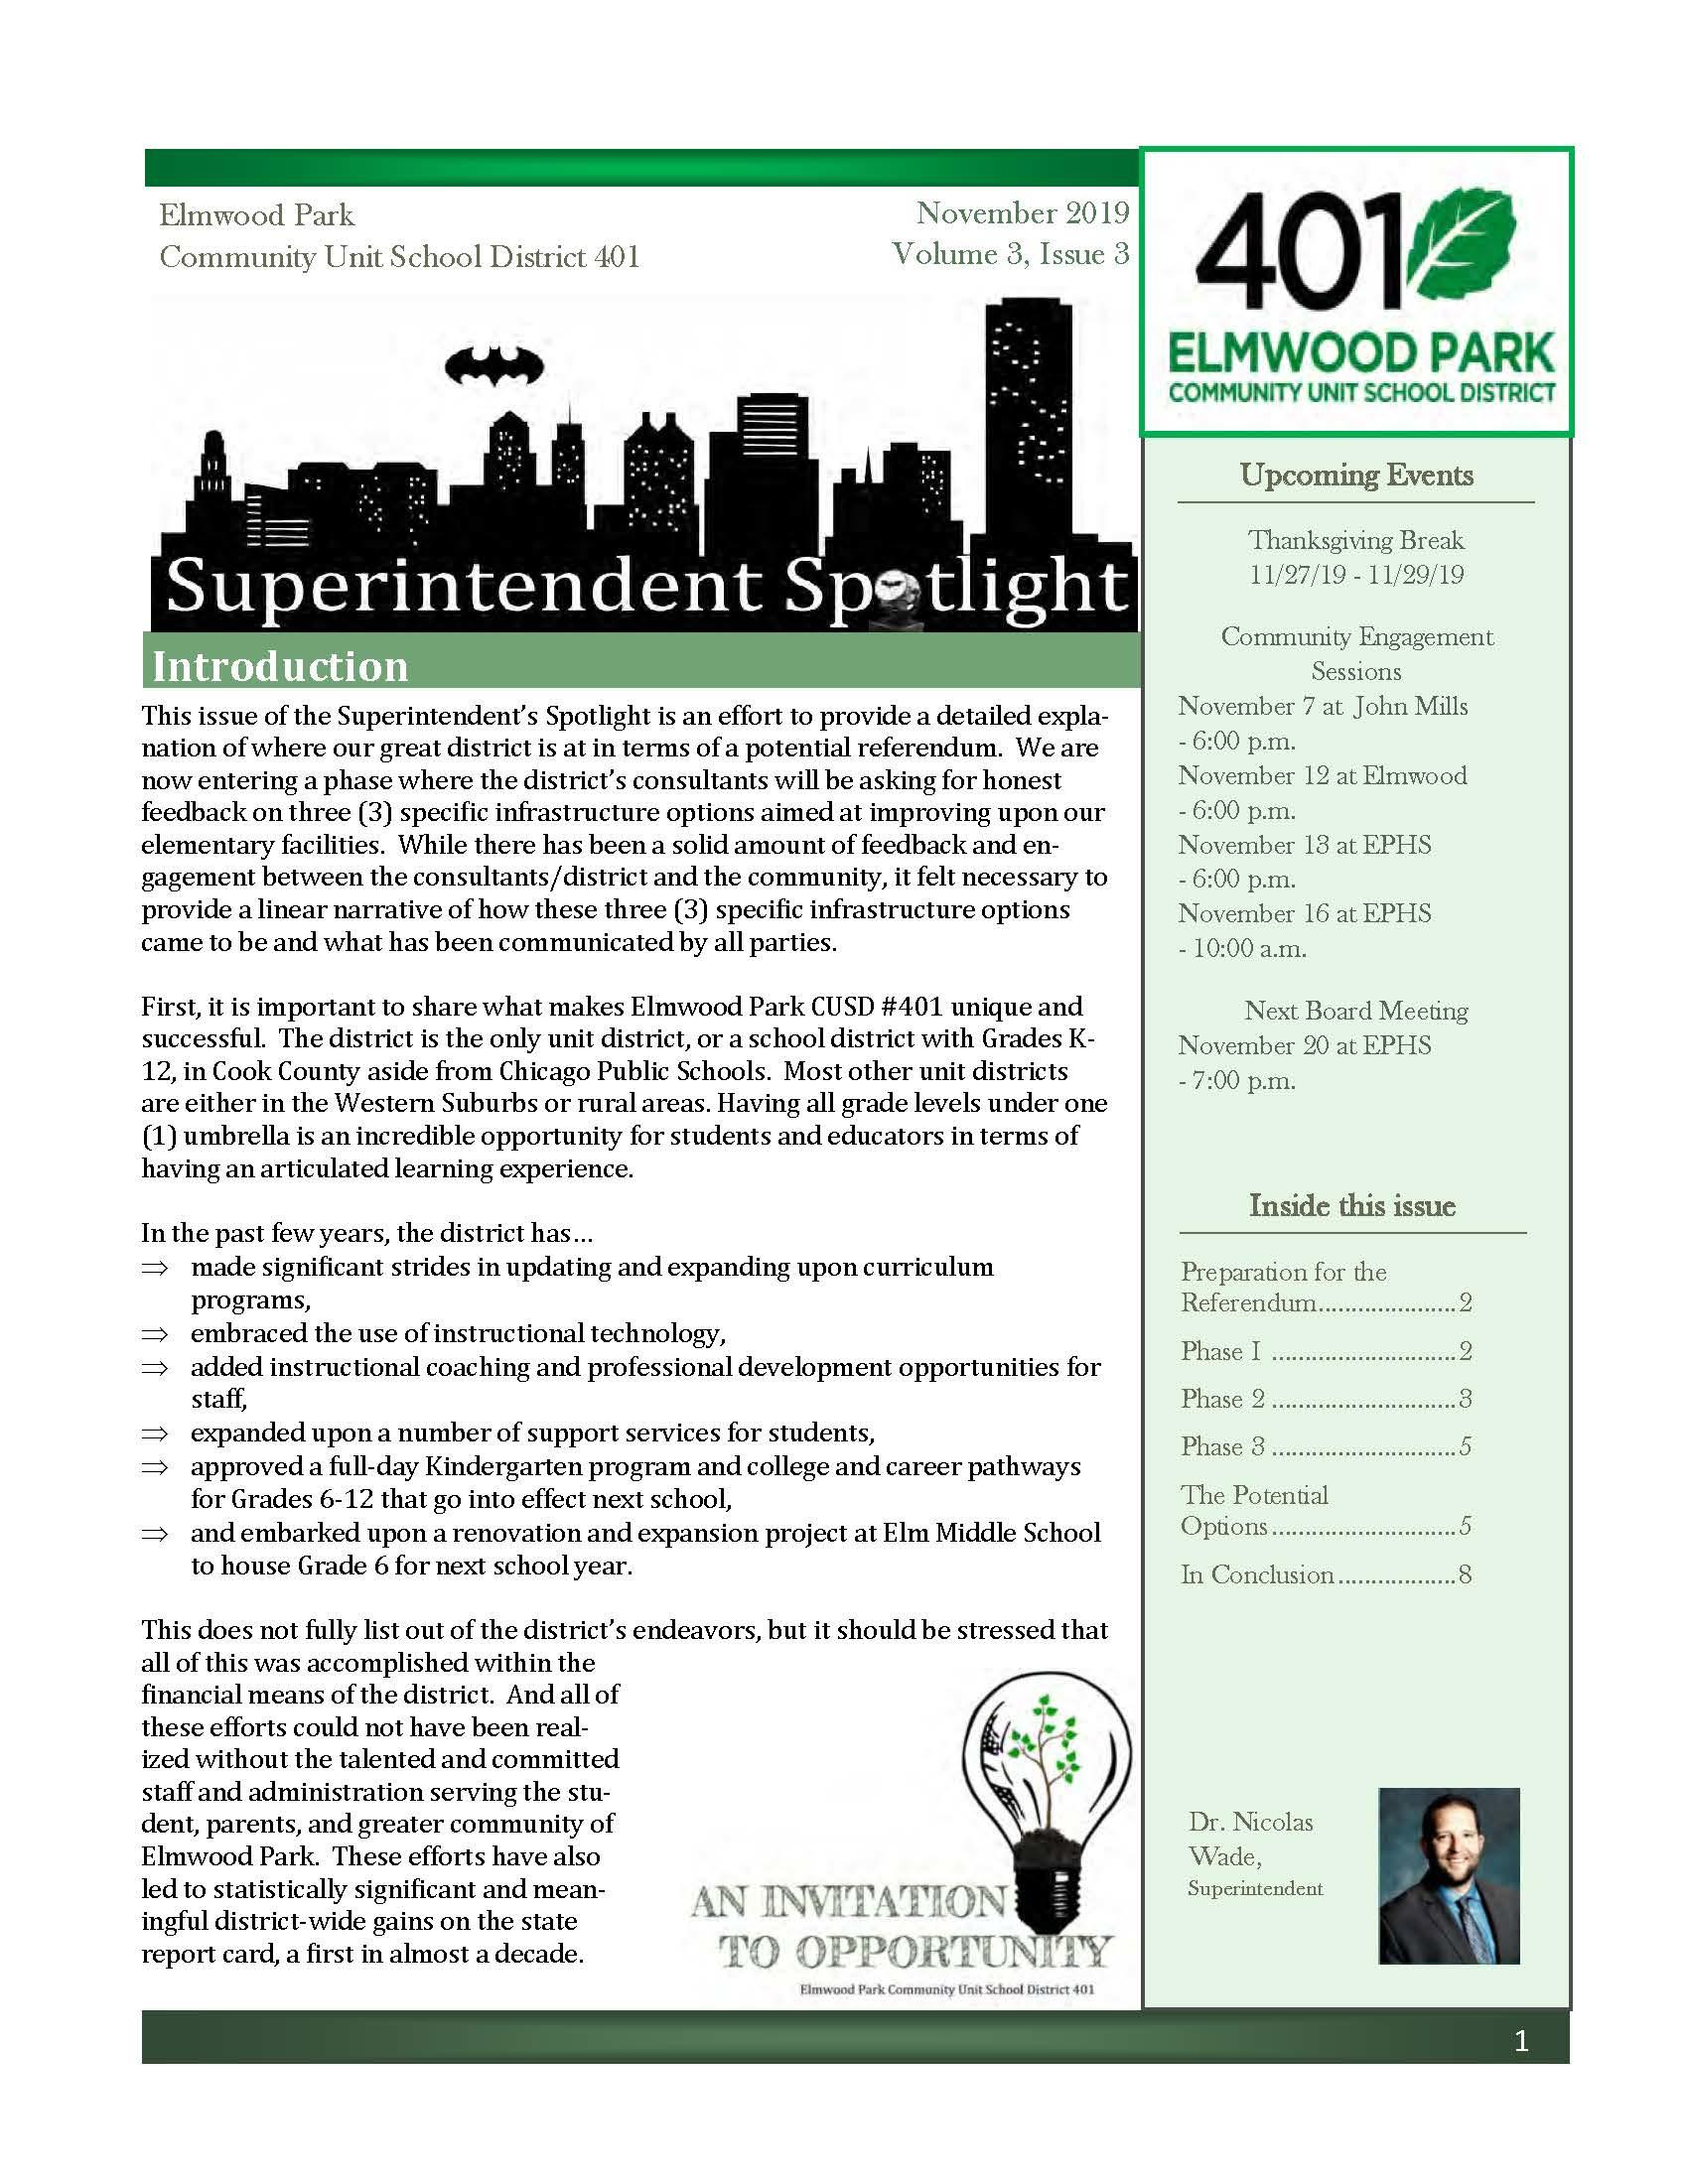 Superintendent Spotlight, November 2019, Issue 3, English, page 1